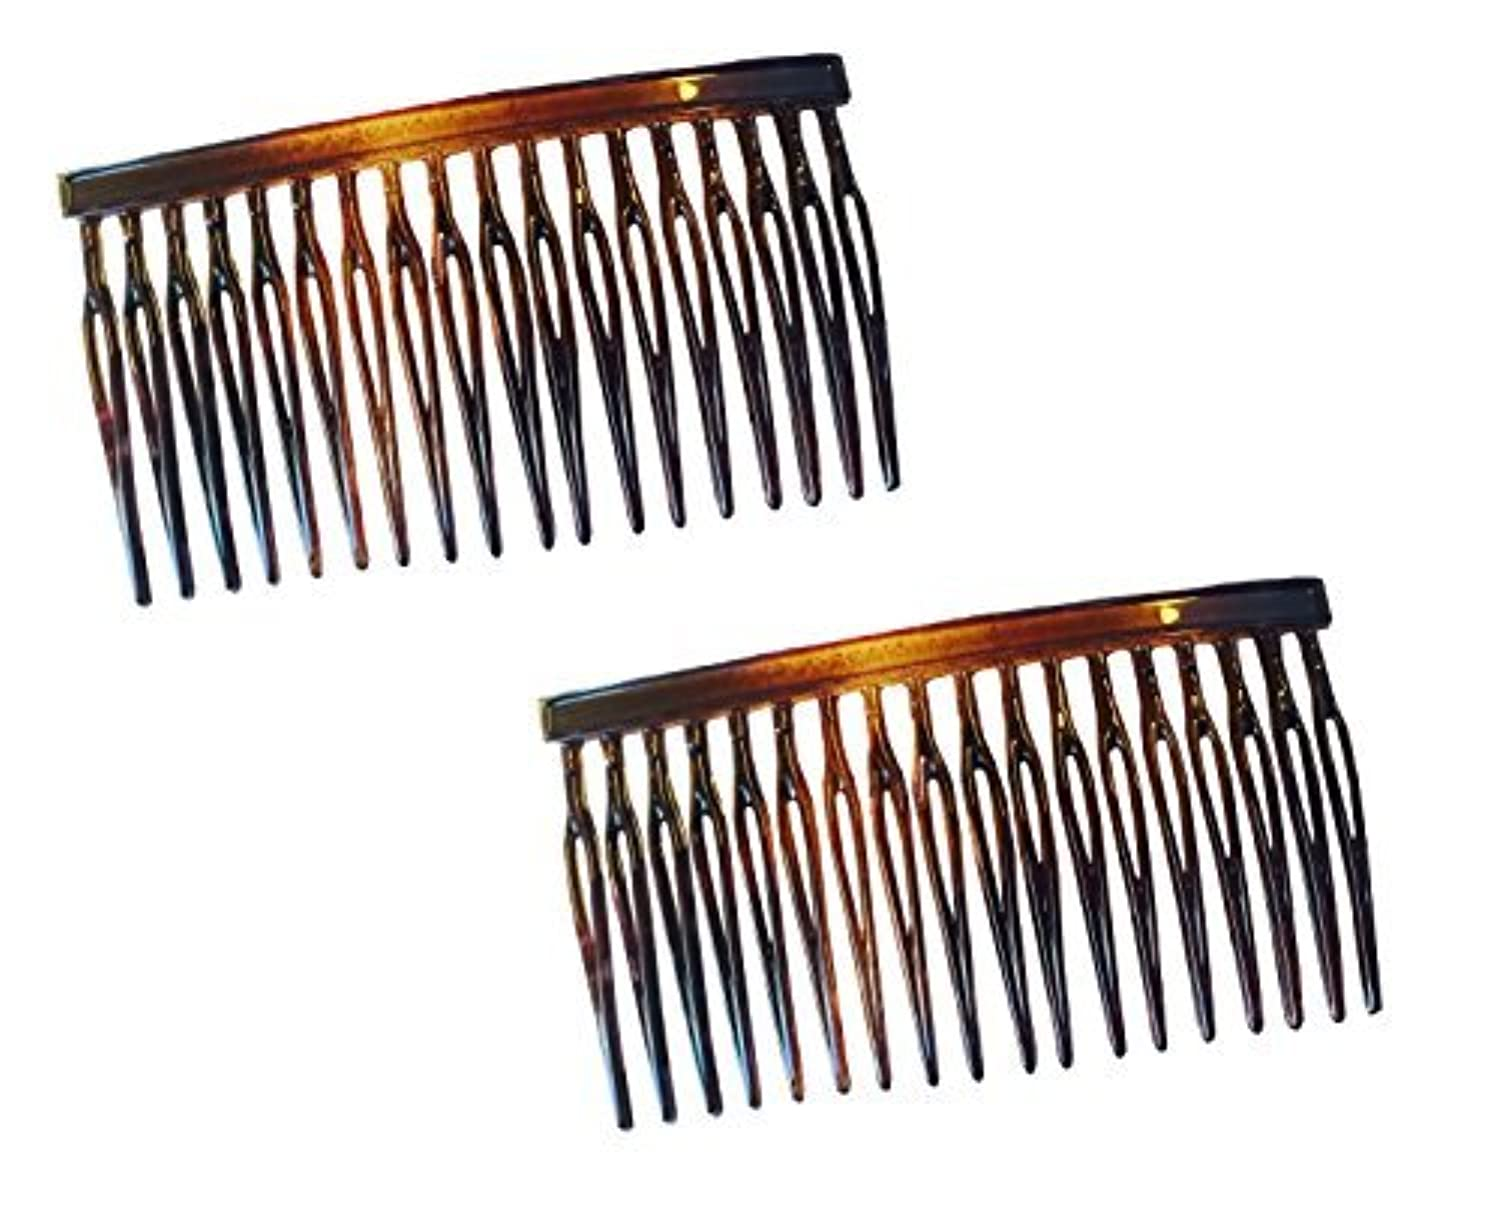 リーフレット八百屋さん個性Parcelona French Light 2 Pieces Small Glossy Celluloid Shell Good Grip Updo 18 Teeth Side Hair Comb Combs [並行輸入品]